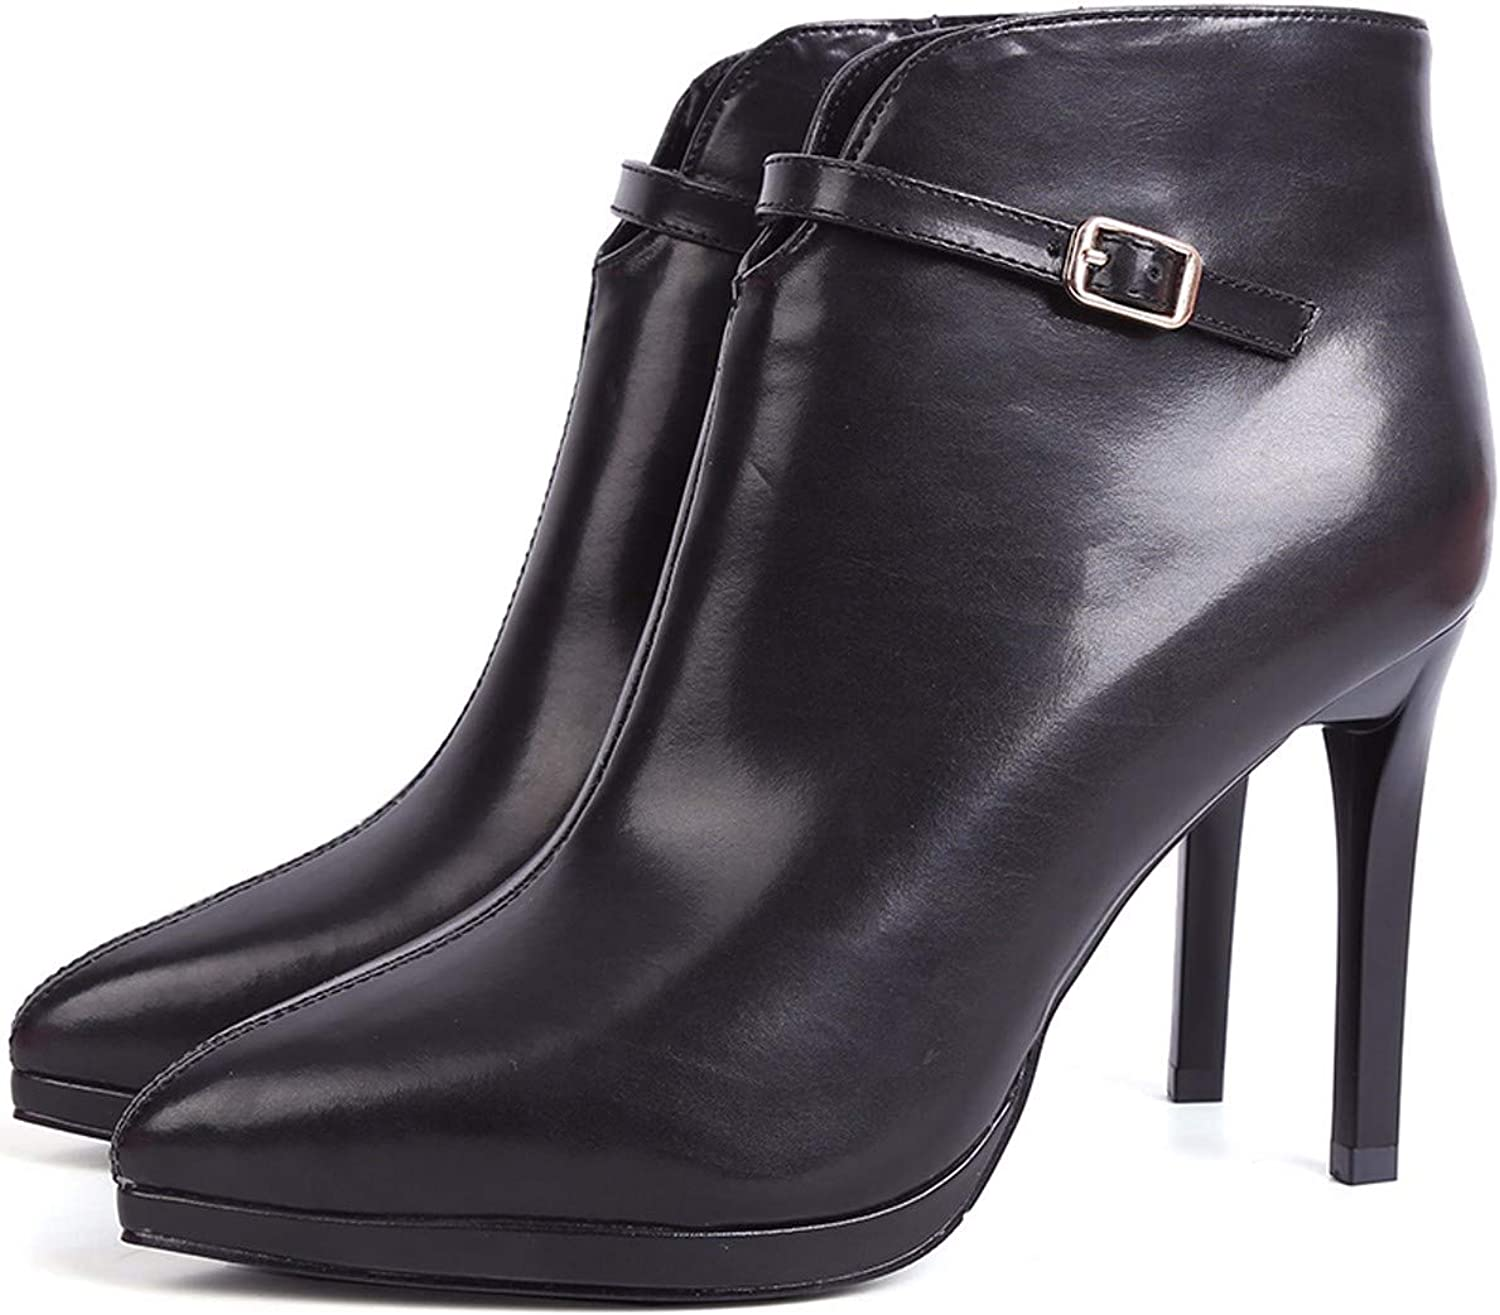 SFSYDDY Popular shoes Sexy Ankle Boots with High 10Cm Super High Heel Short Tube Fashion Waterproof Table Buckle.